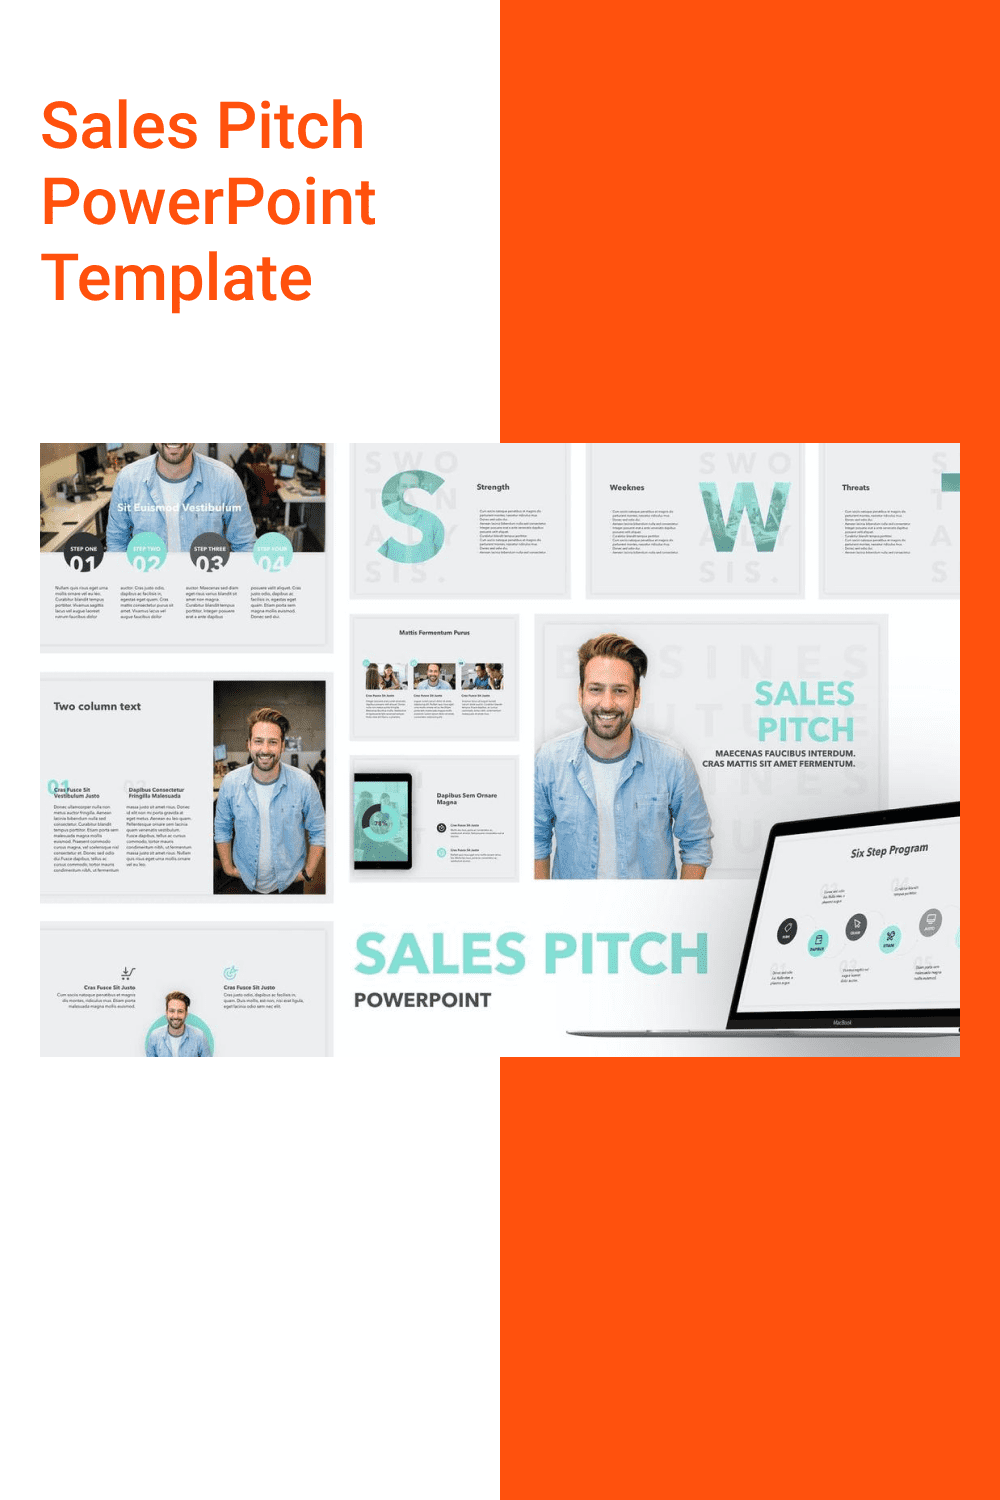 Sales Pitch PowerPoint Template.